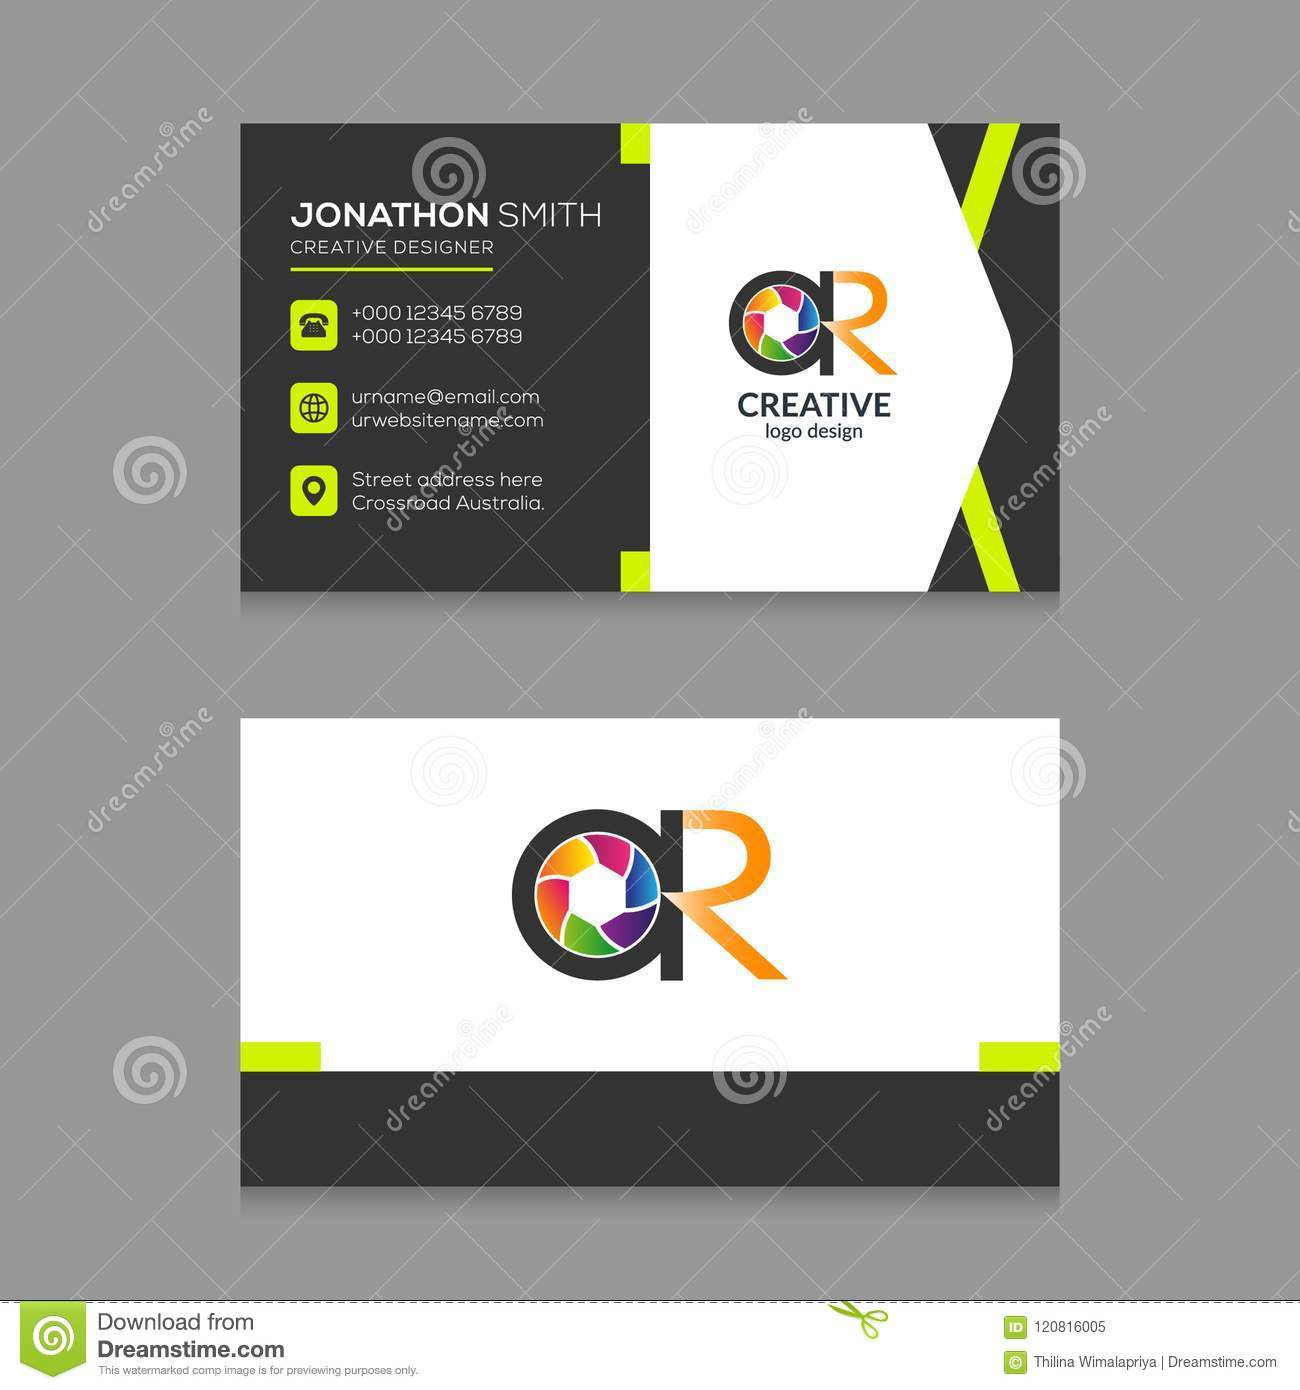 Ar Photography Abstract Letter Logo Business Card Design Template Vector Stock Vector Illustration Of Digital Creative 120816005